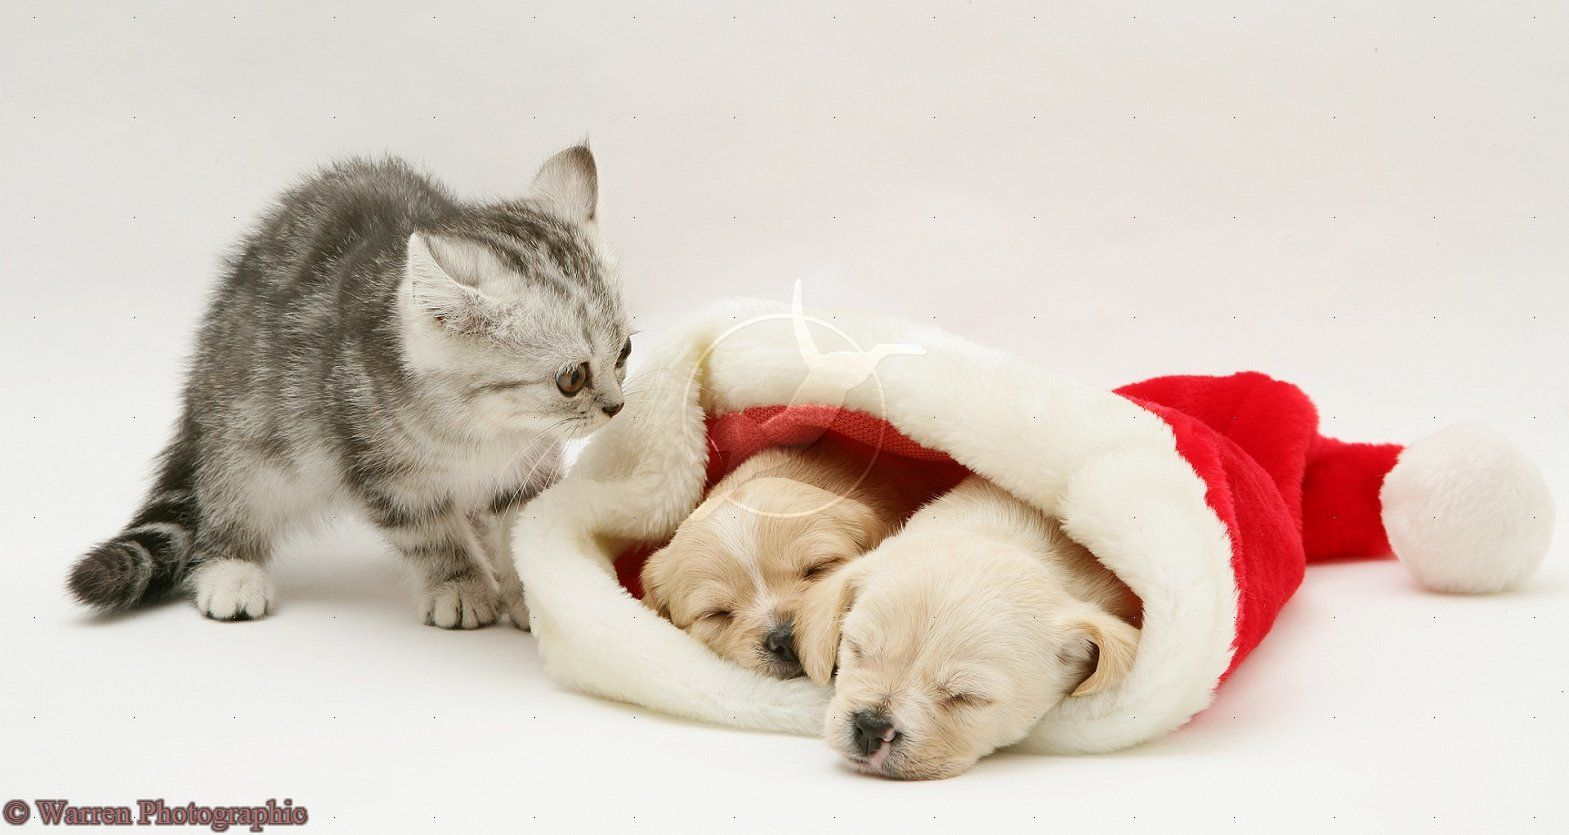 Puppies And Kittens Pictures Cute Christmas Kittens And Puppies